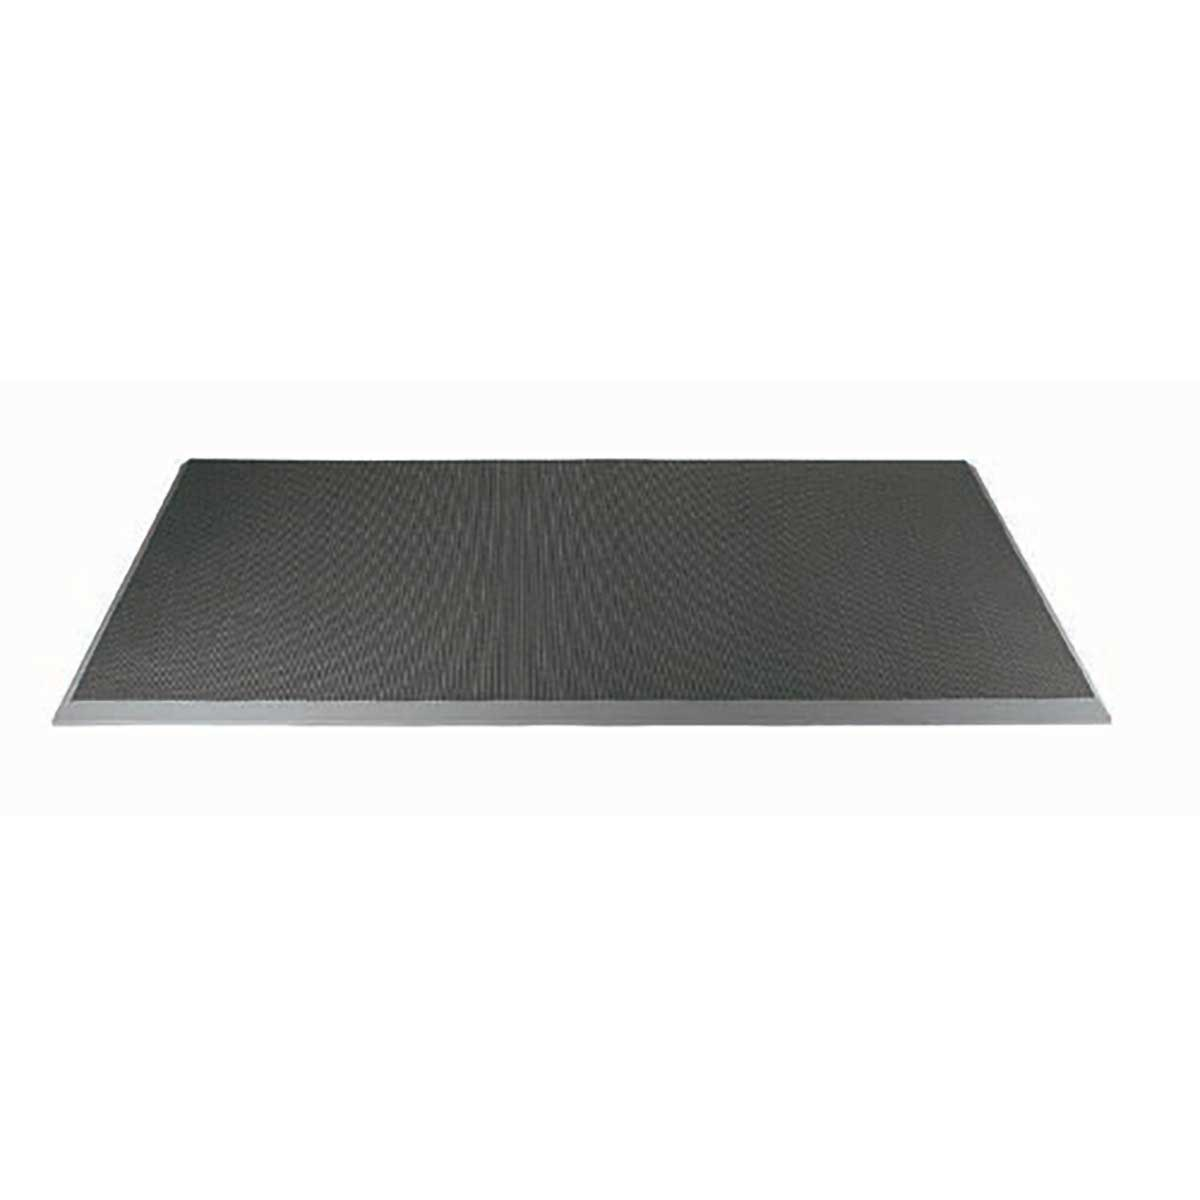 Orthopedic Mat for Pet Groomers 24 inches by 42 inches